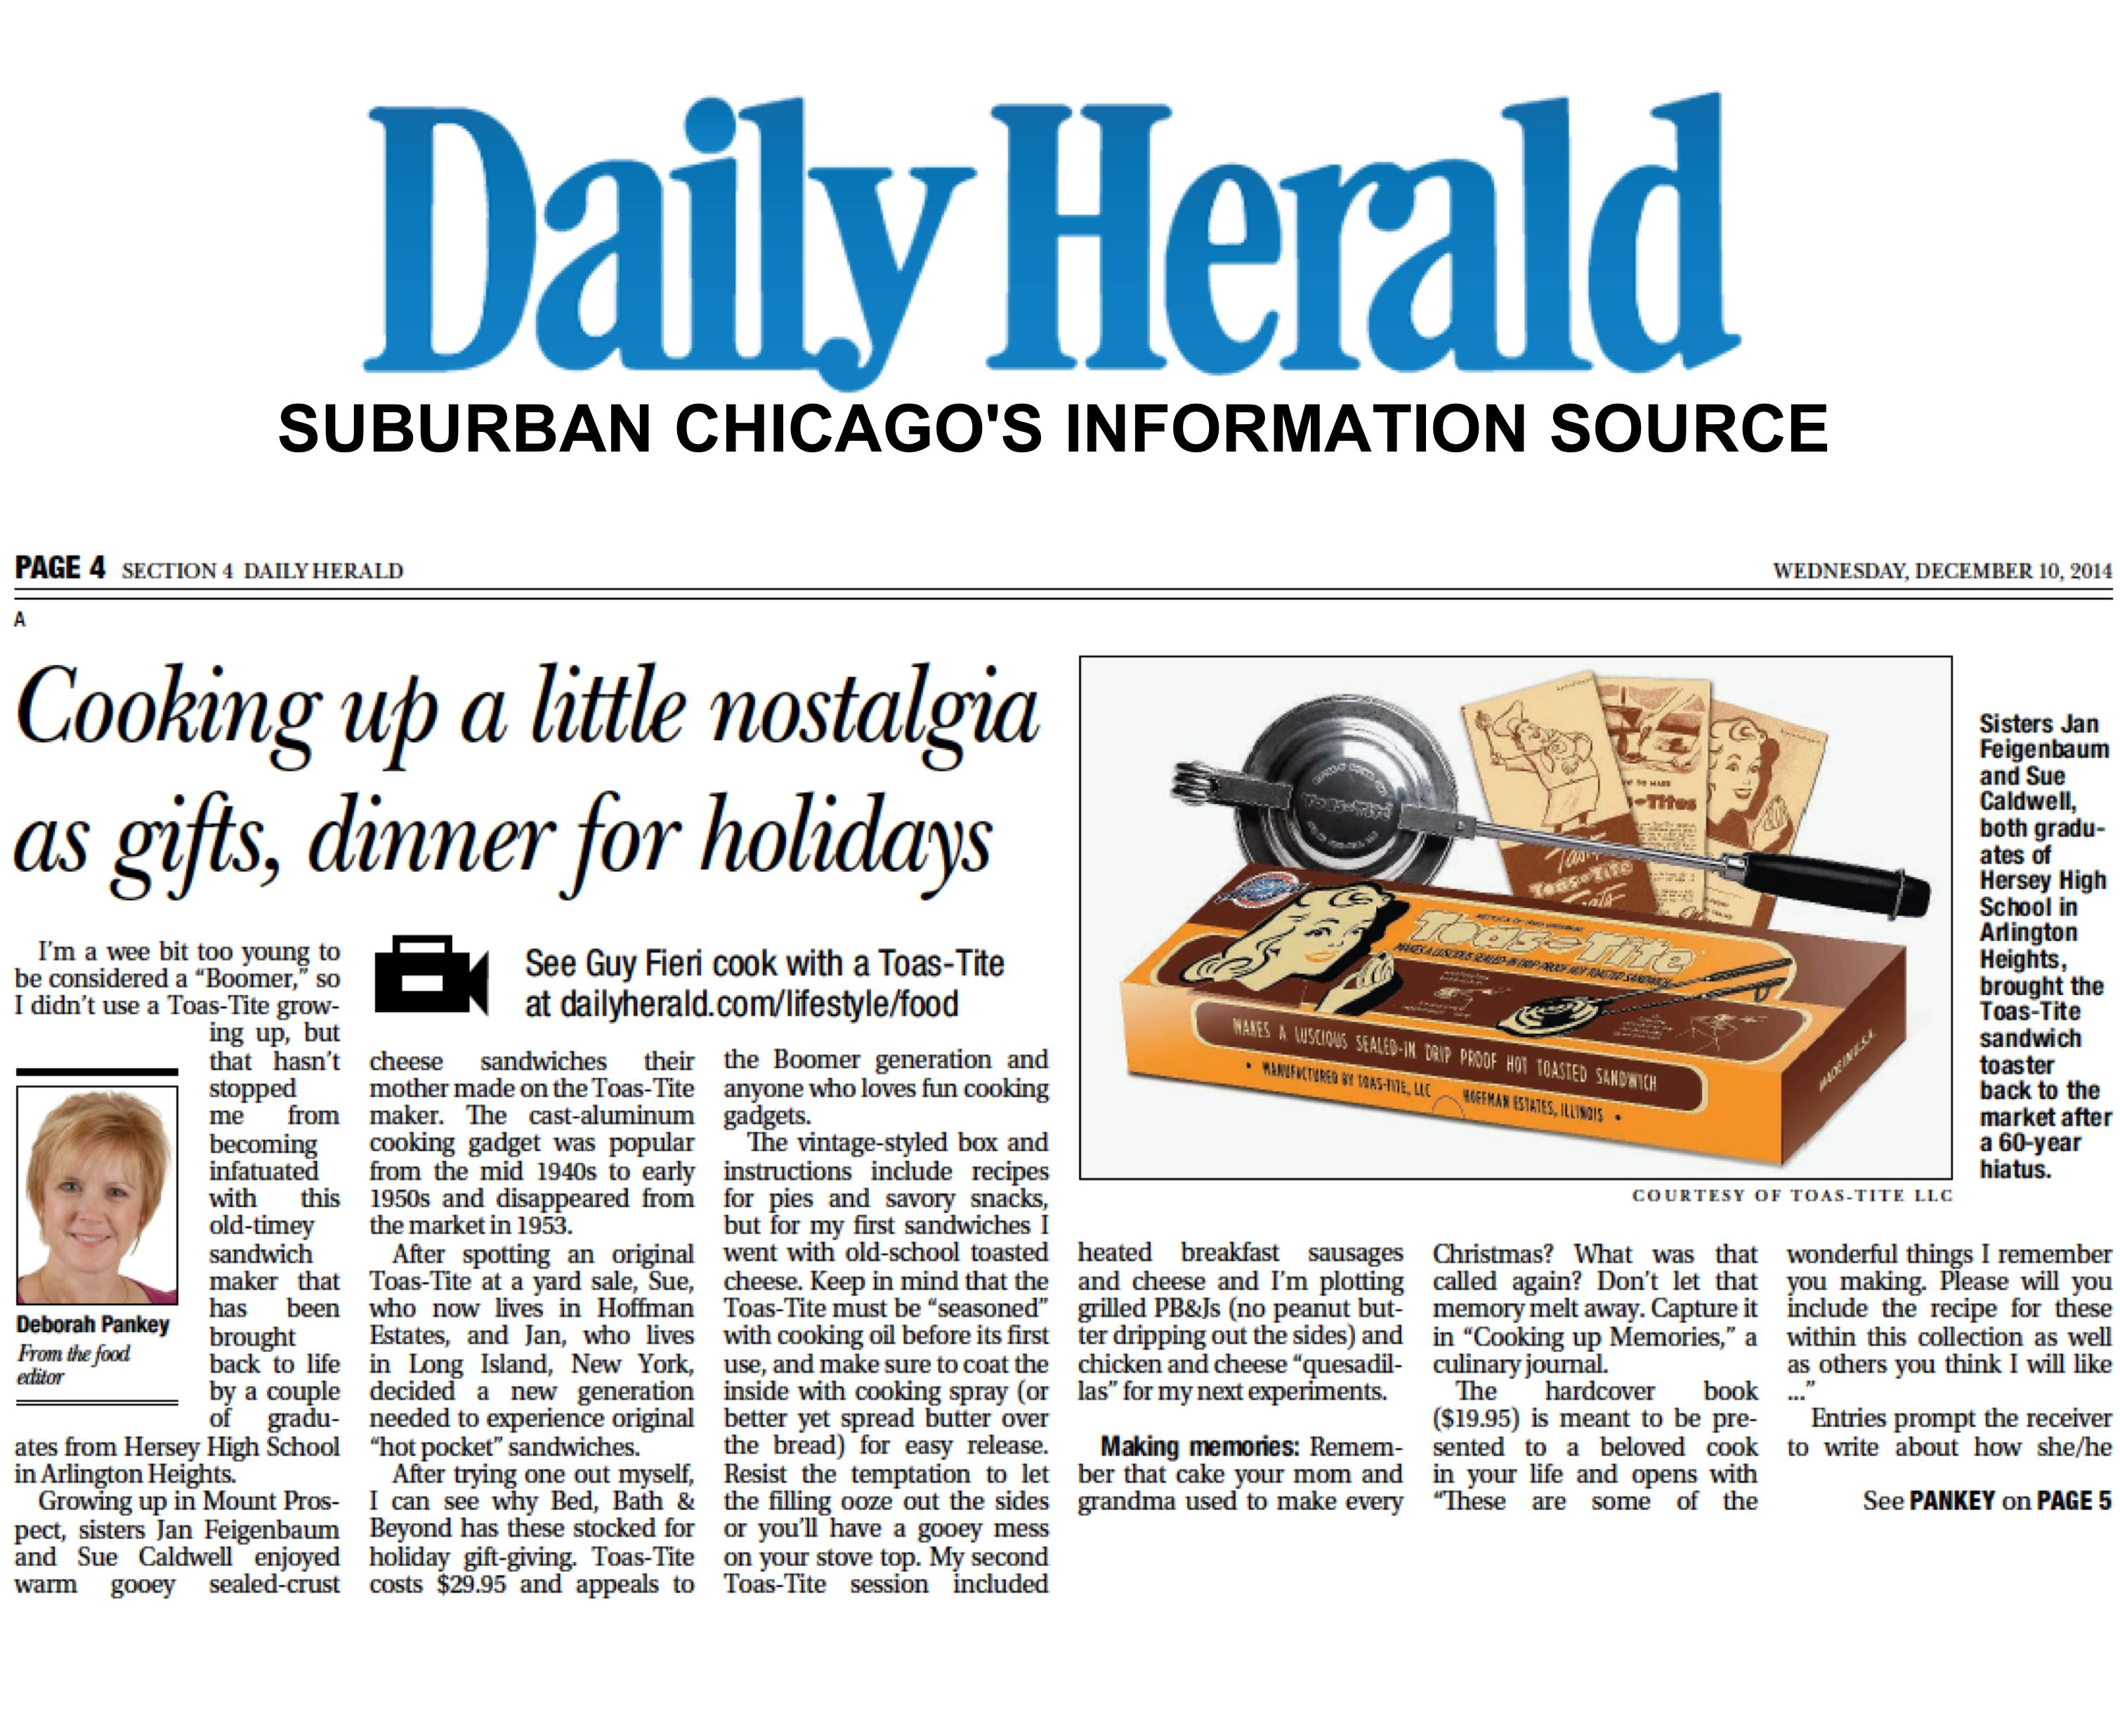 Chicago's Daily Herald - See Guy Fieri cook with a Toas-Tite